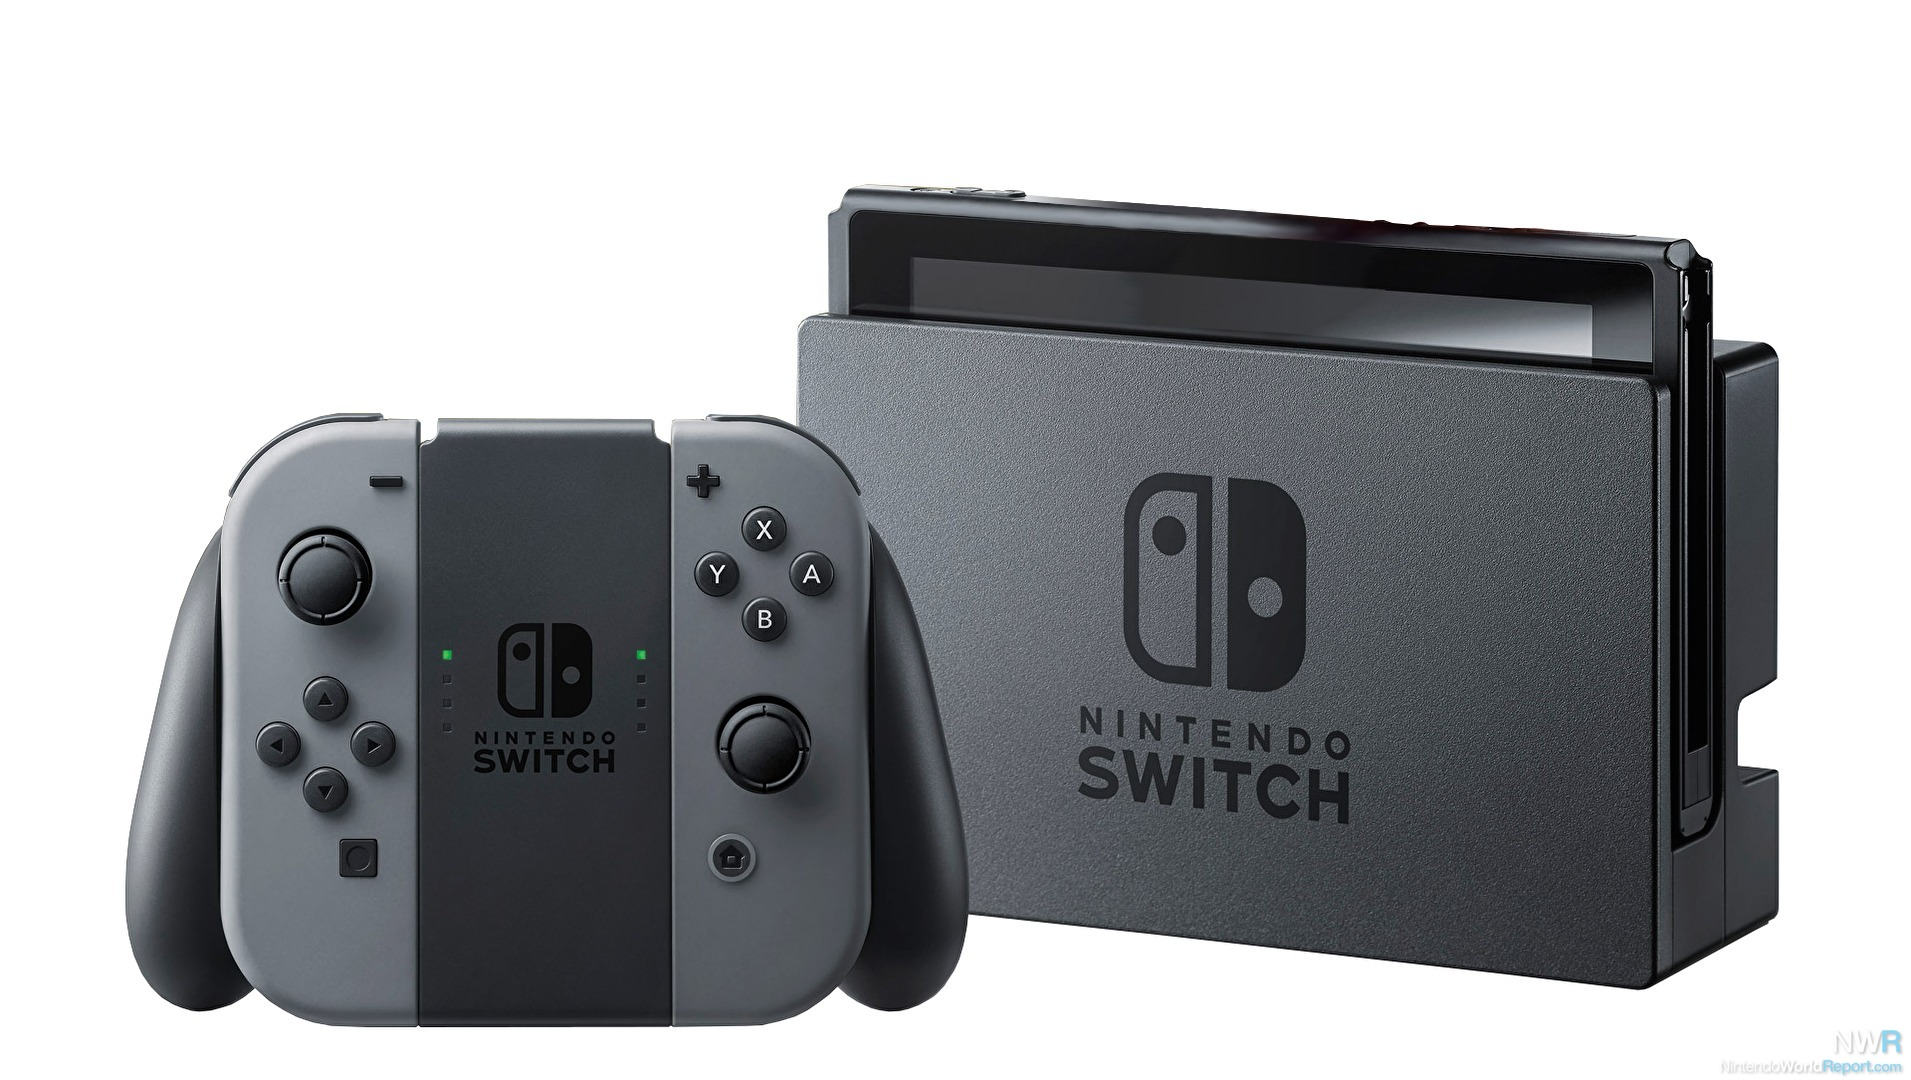 Nintendo Switch Reaches New Sales Milestone, But Still Far Off Target